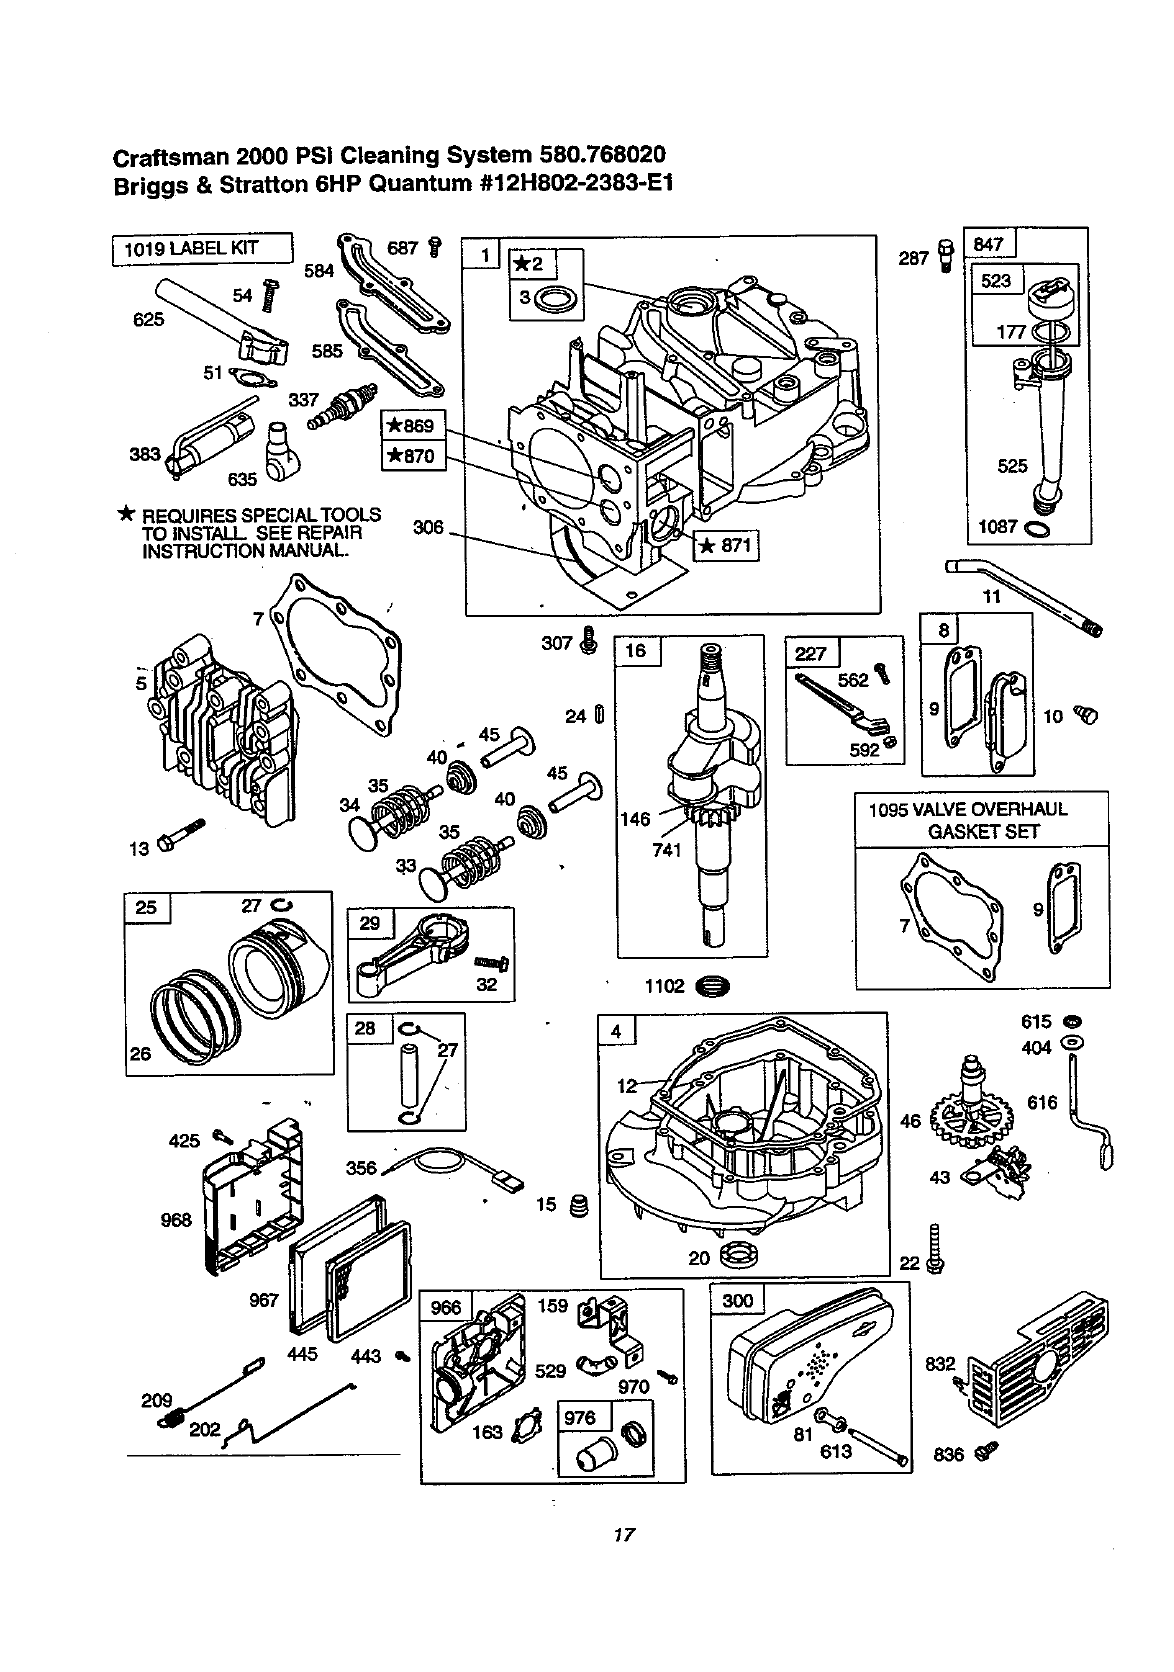 Page 17 of Craftsman Pressure Washer 580.768020 User Guide